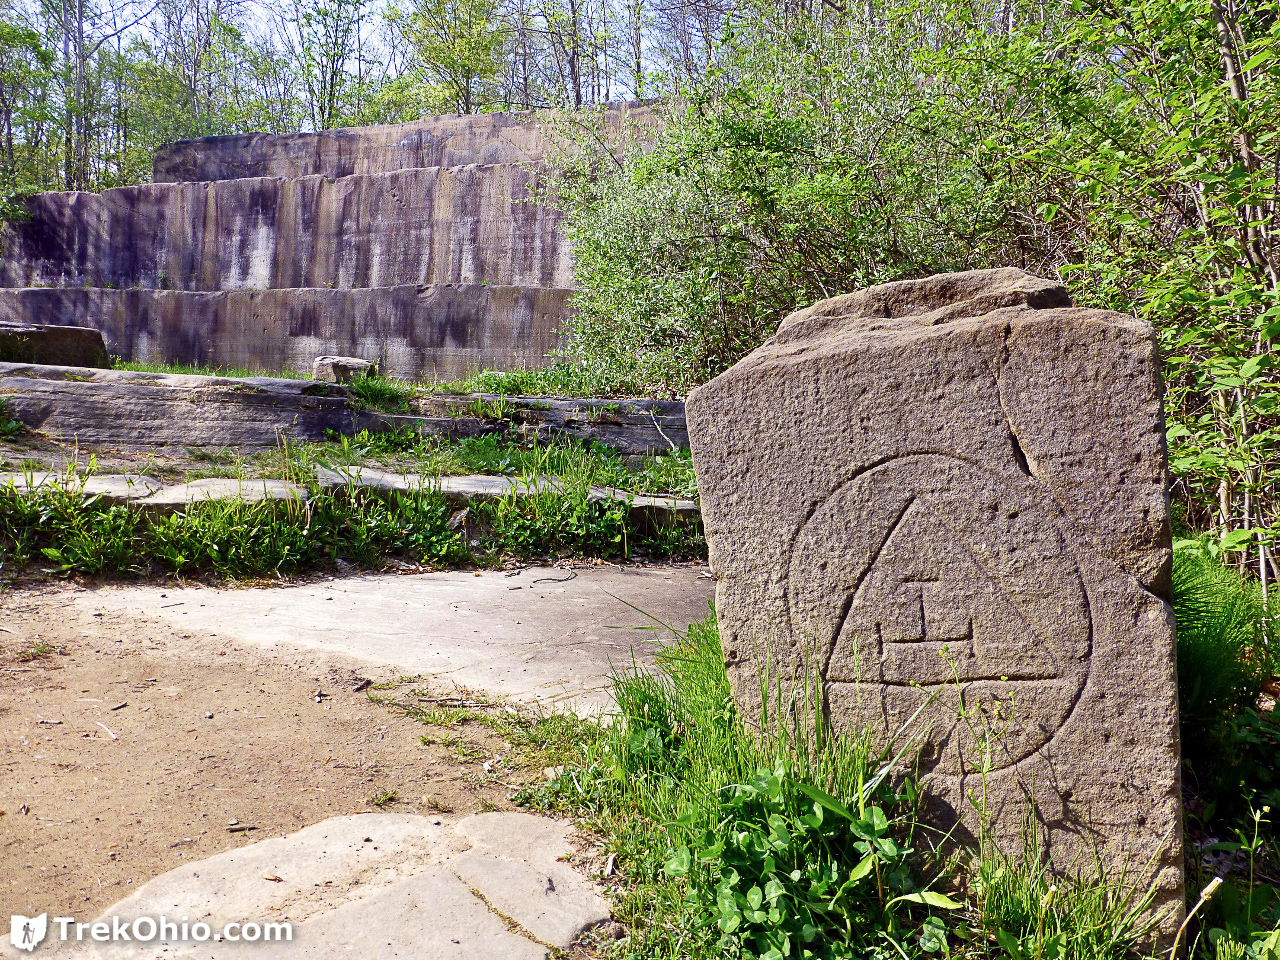 Deep lock quarry metro park trekohio trail mysterious symbol on the stone in the foreground buycottarizona Image collections